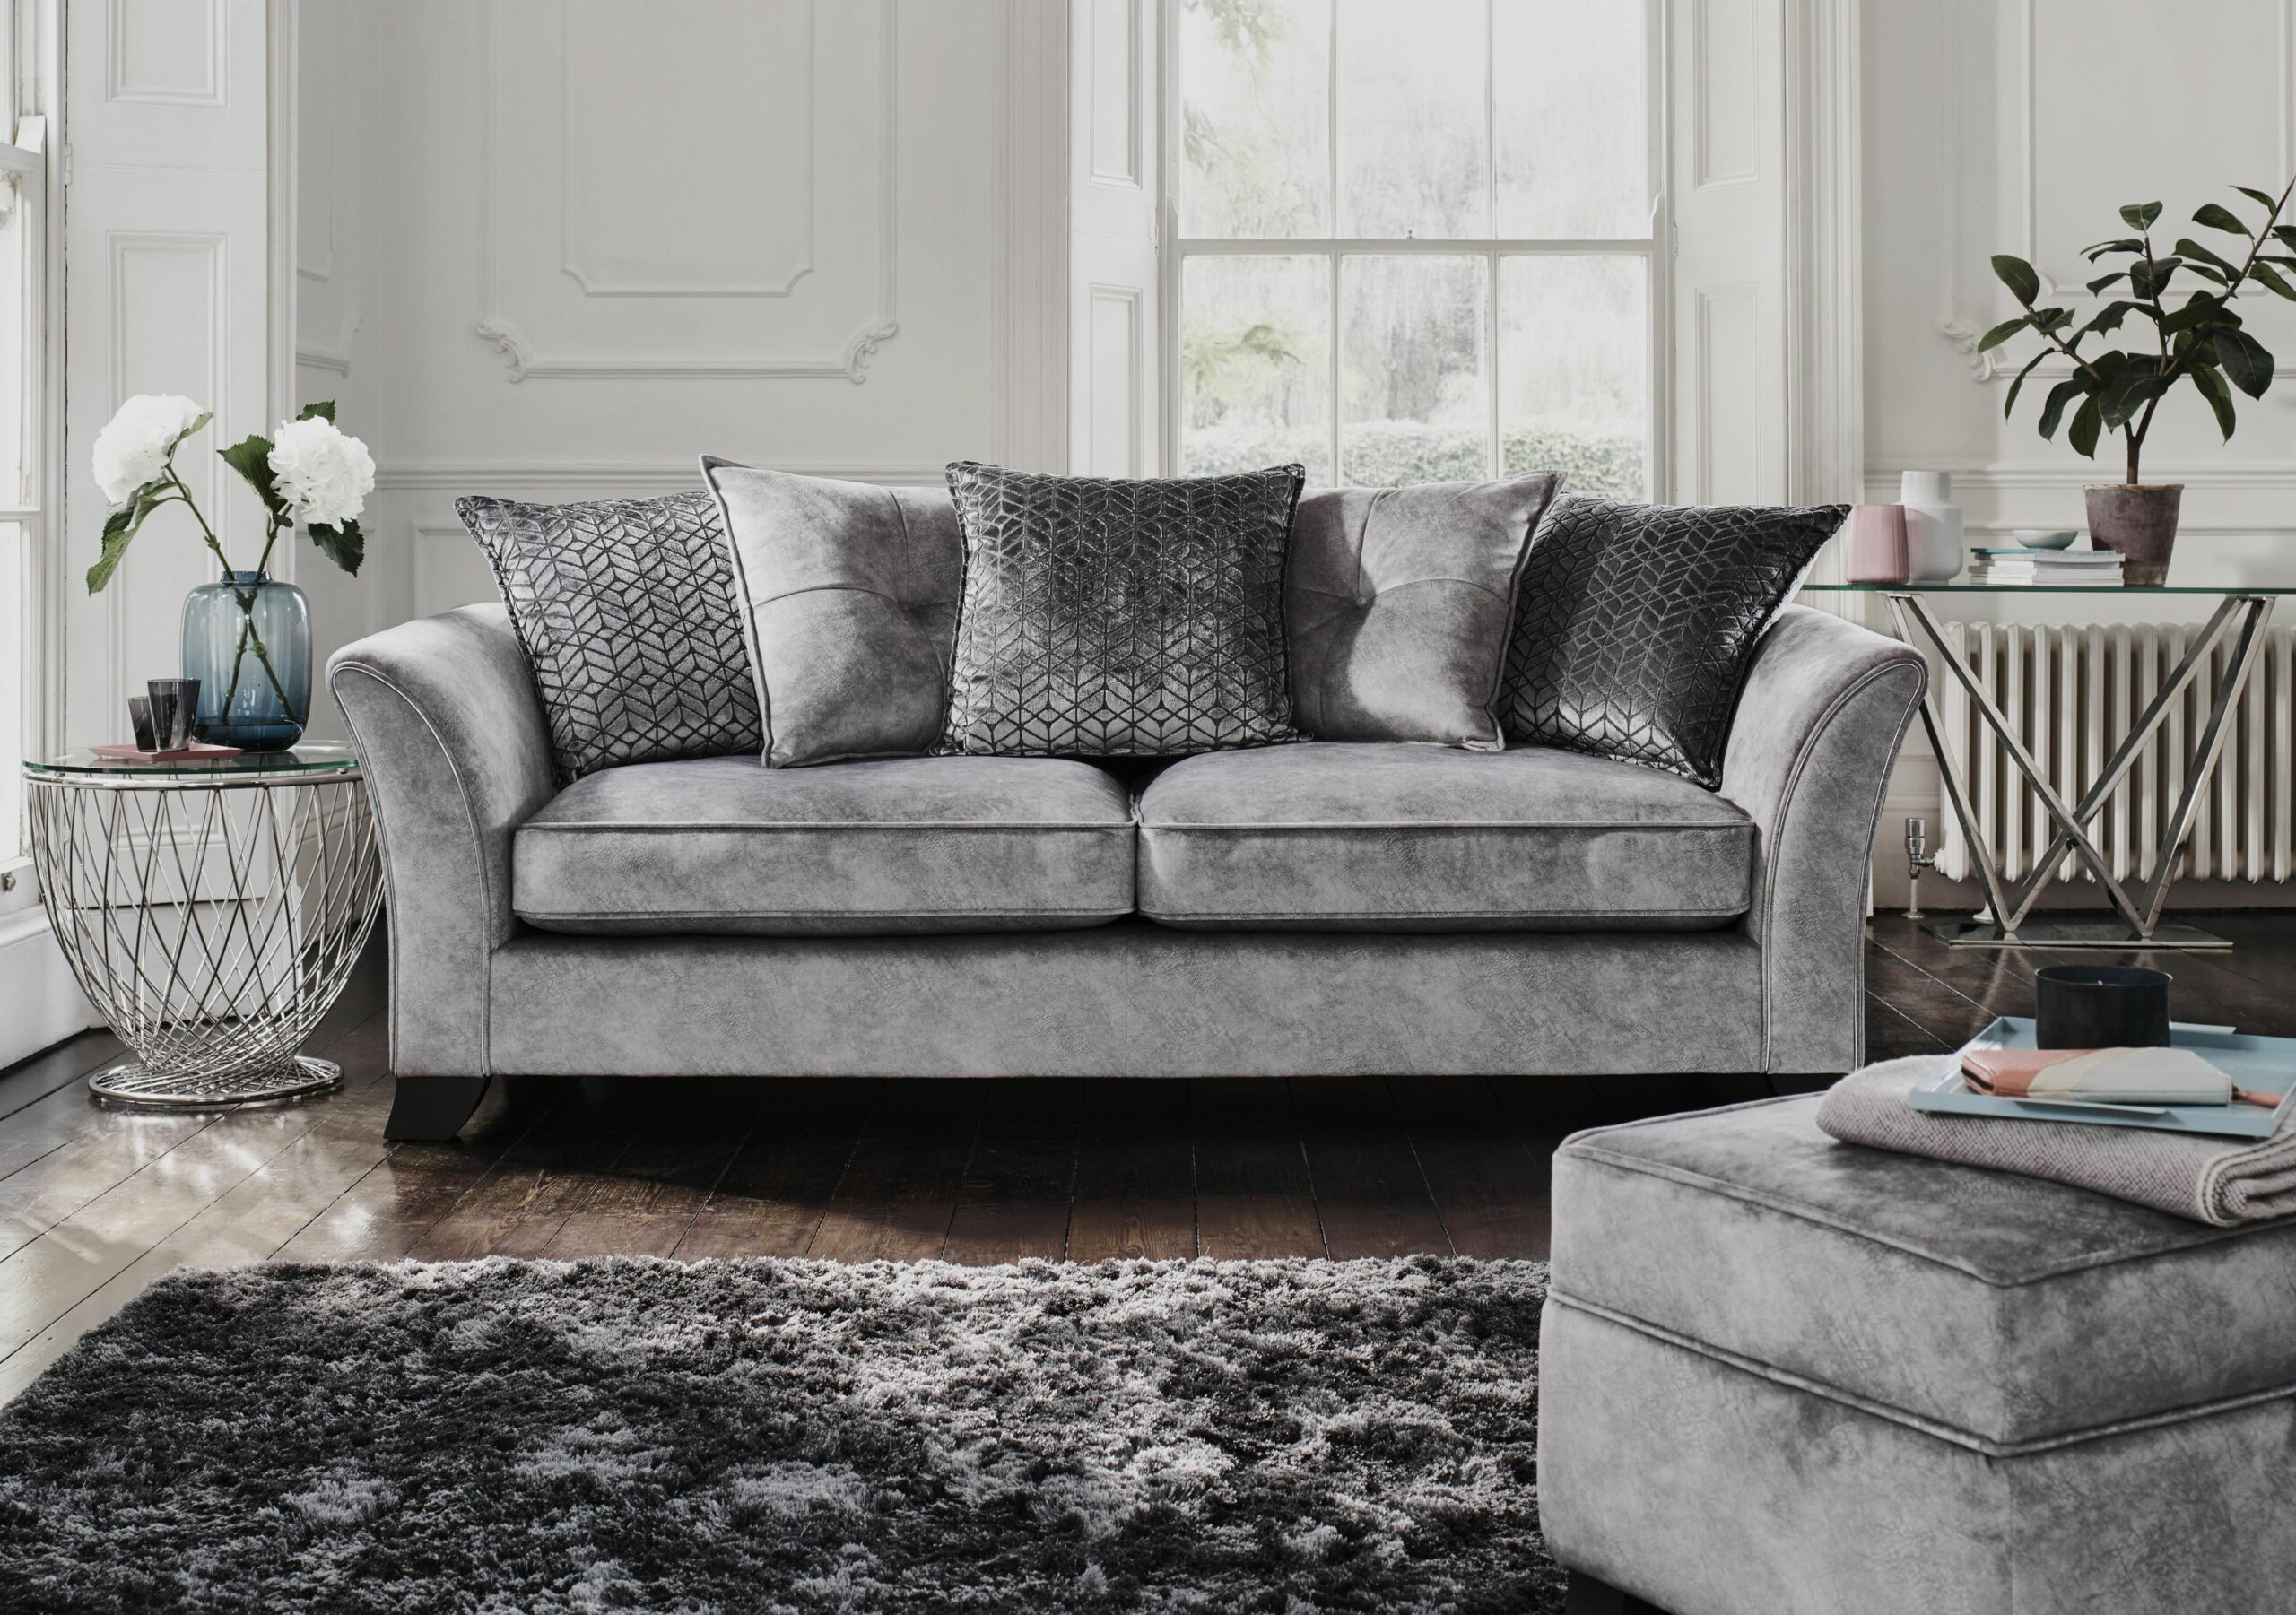 10 grey and blue living room ideas - Furniture Village - Furniture ...